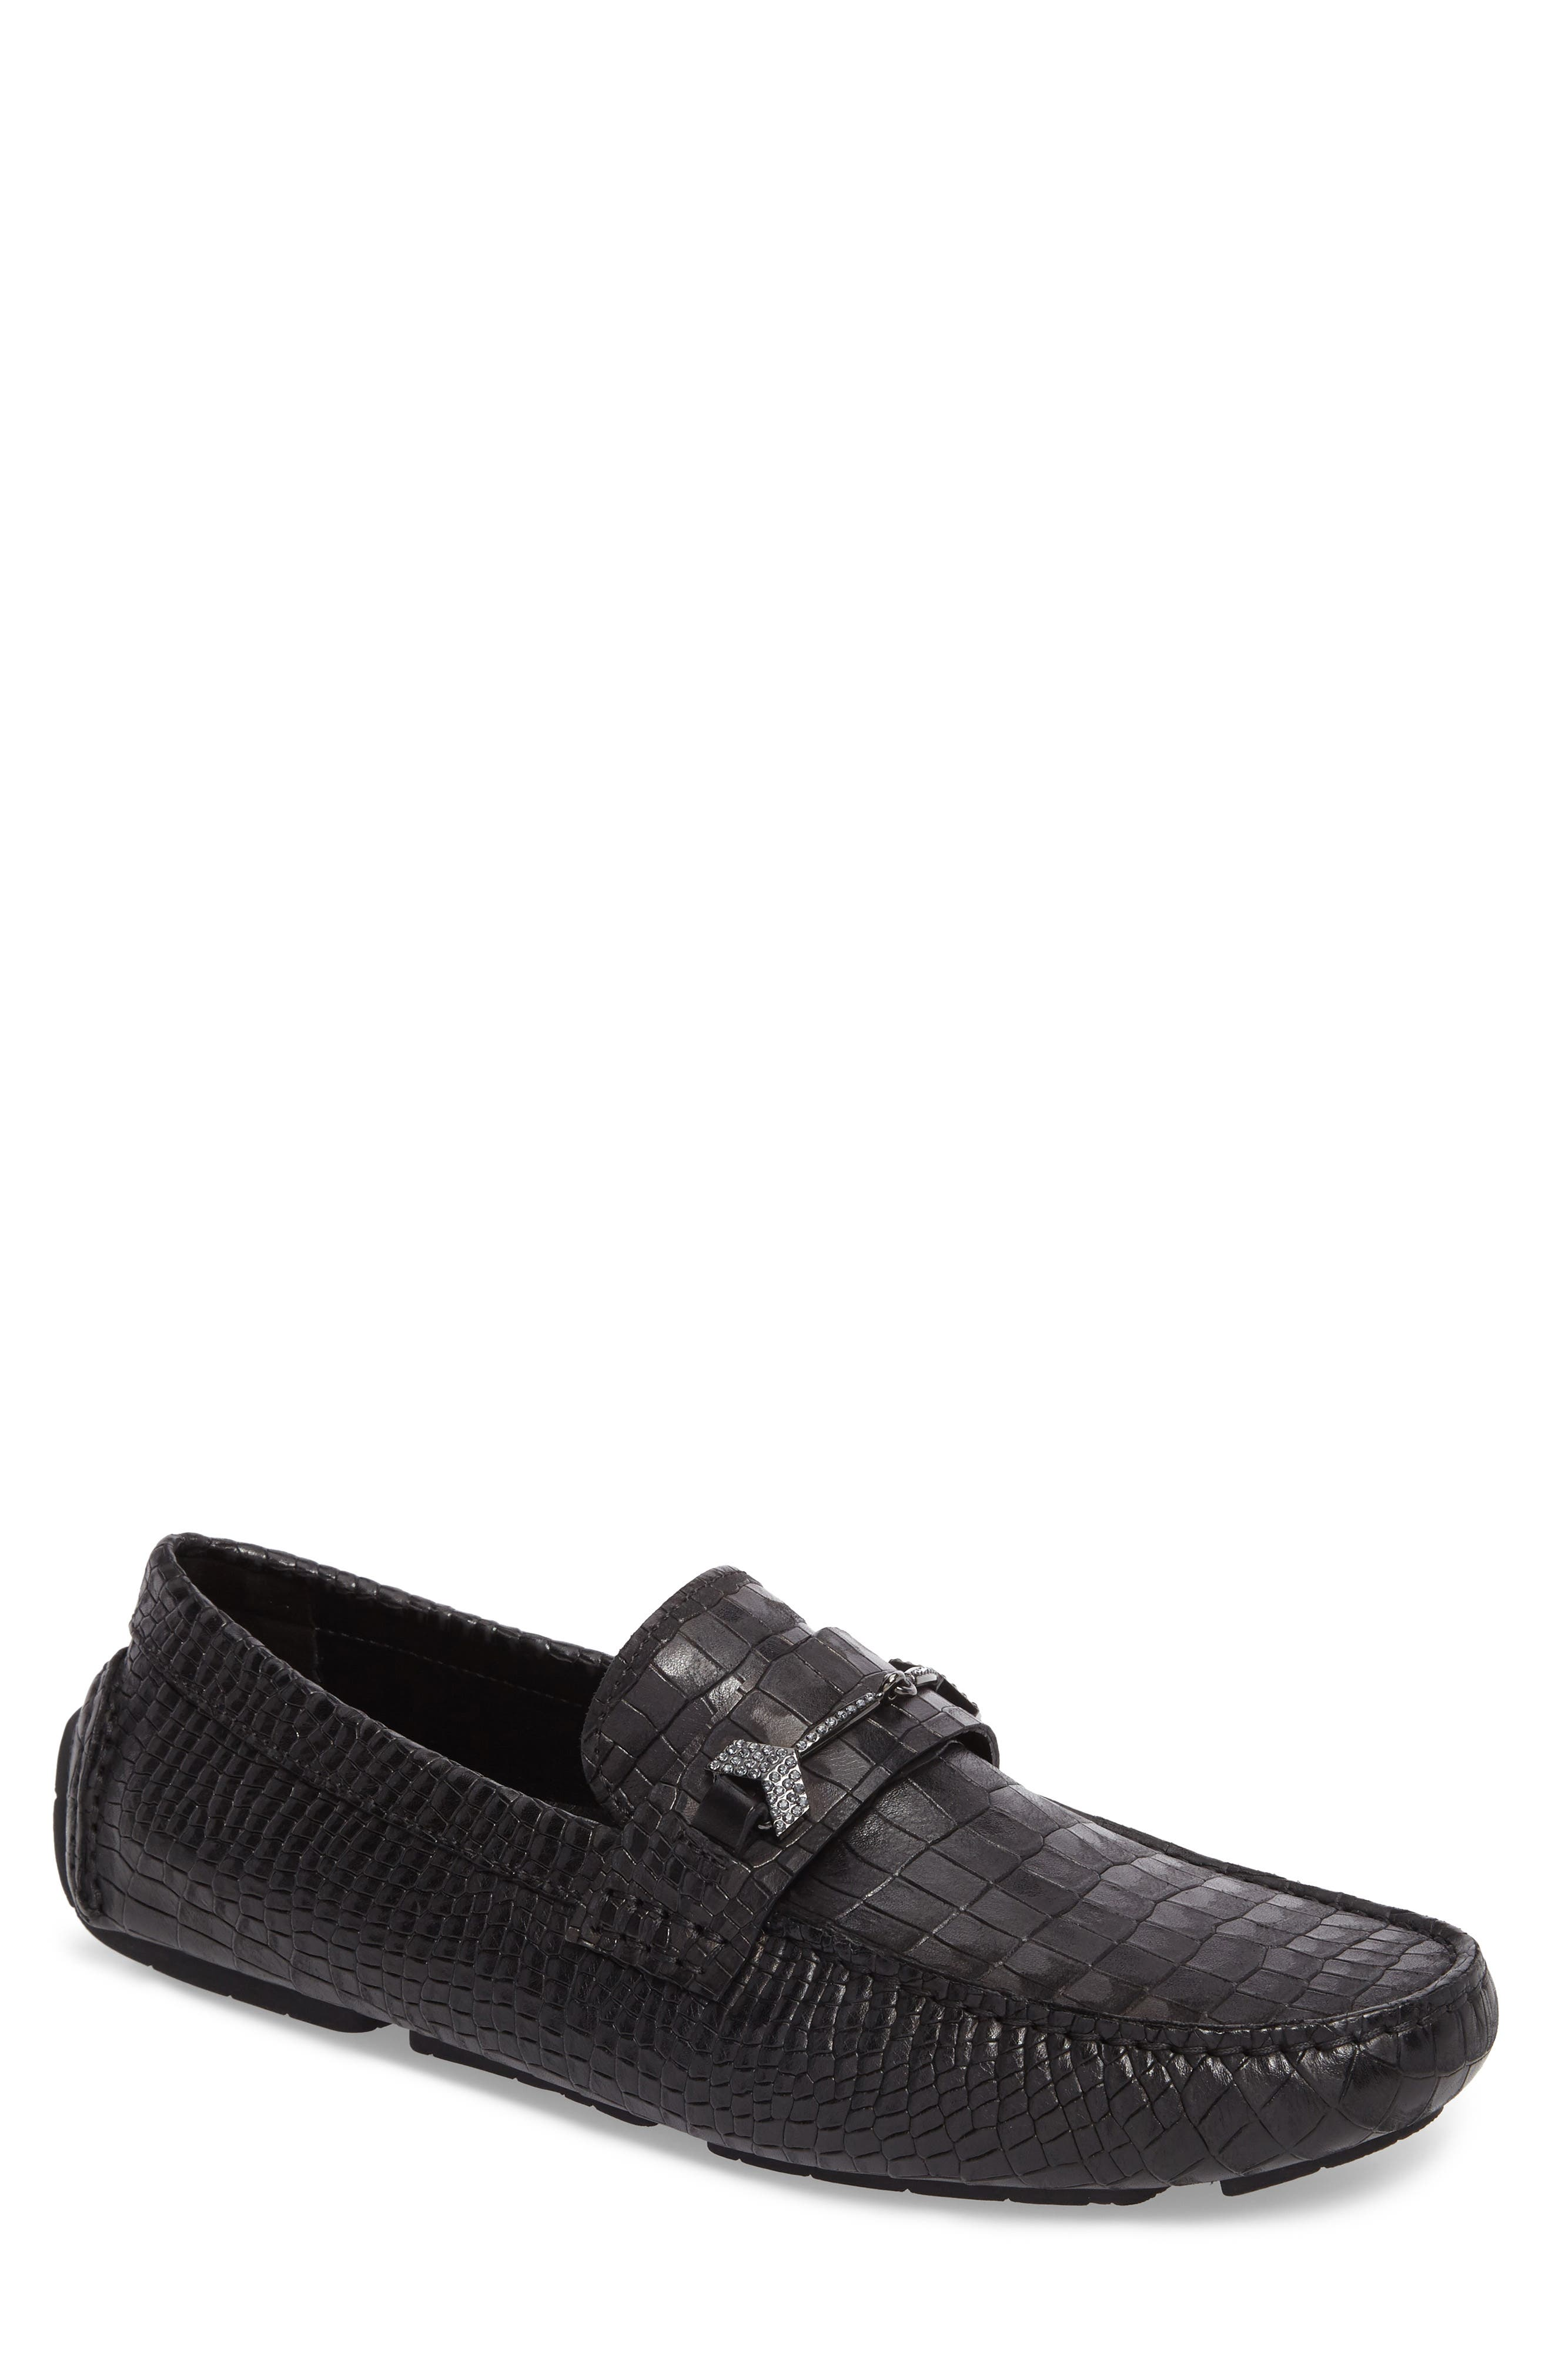 Brewer Croc Textured Driving Loafer,                         Main,                         color,